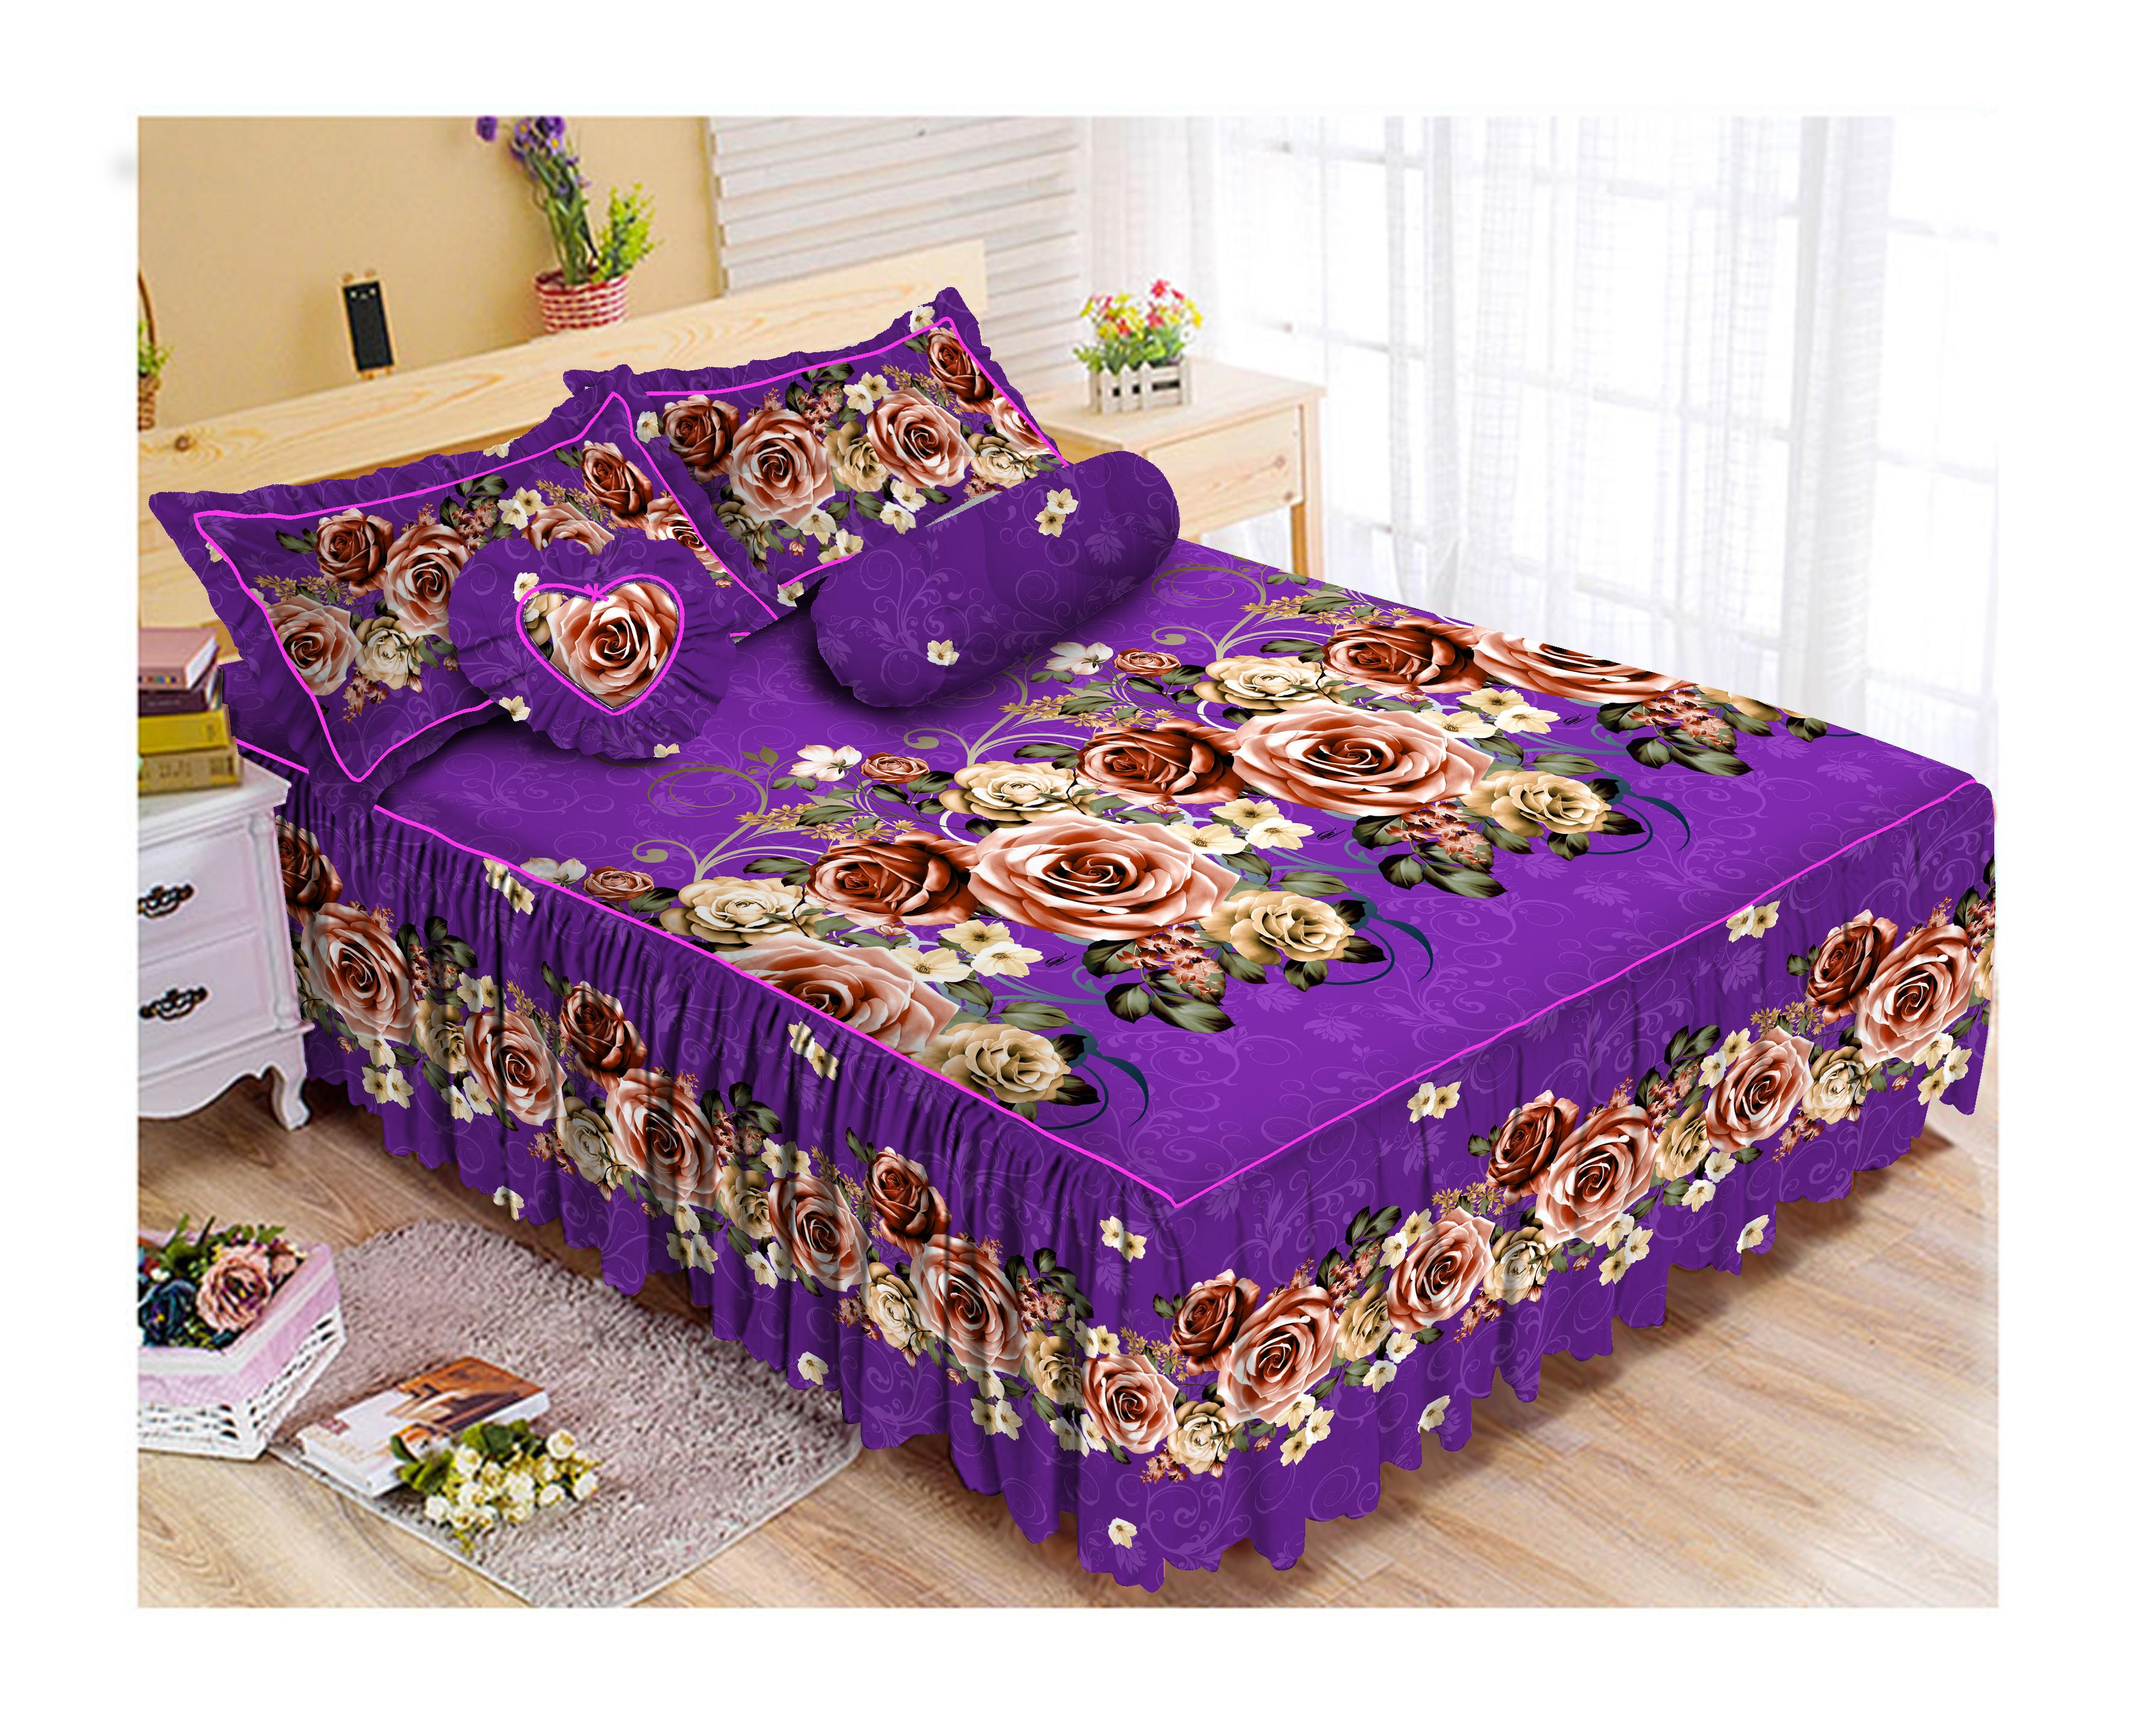 Kintakun Luxury Sprei Rumbai Bantal Busa (RBB) - 180 x 200 B2 (King